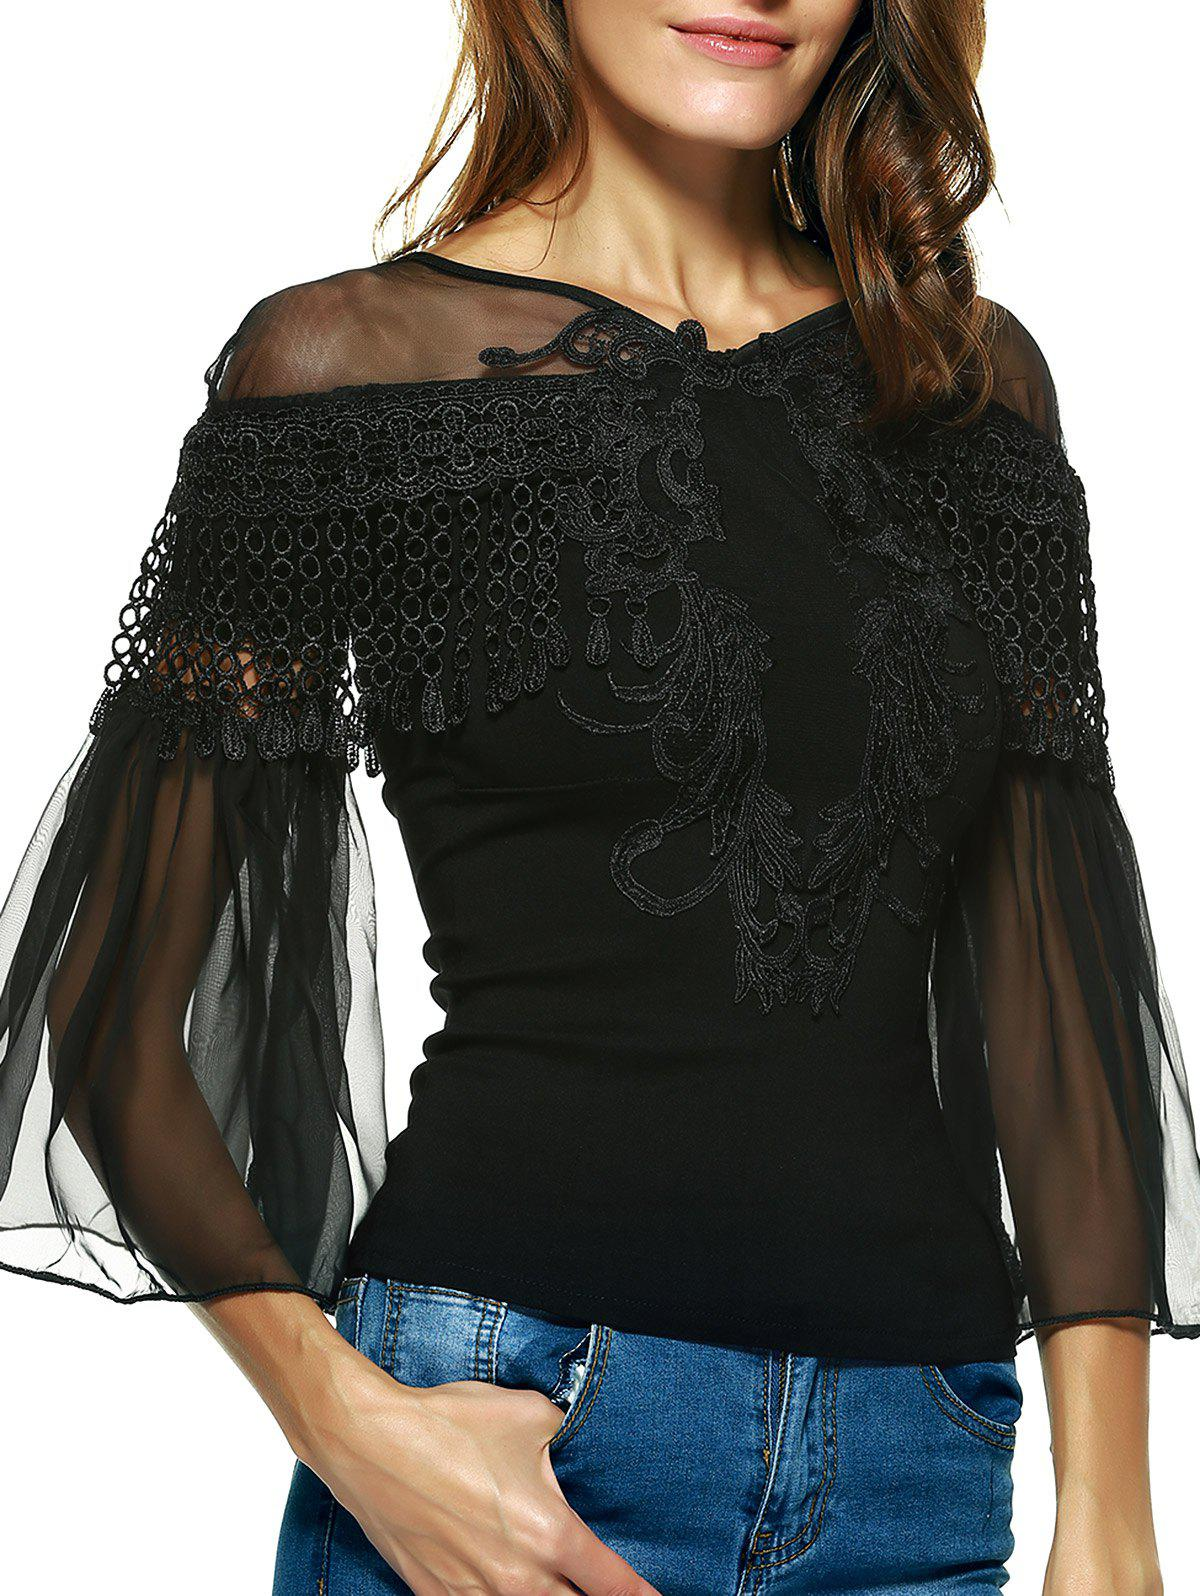 Graceful Women's Bell Sleeves Embroidered Mesh Spliced Blouse - BLACK ONE SIZE